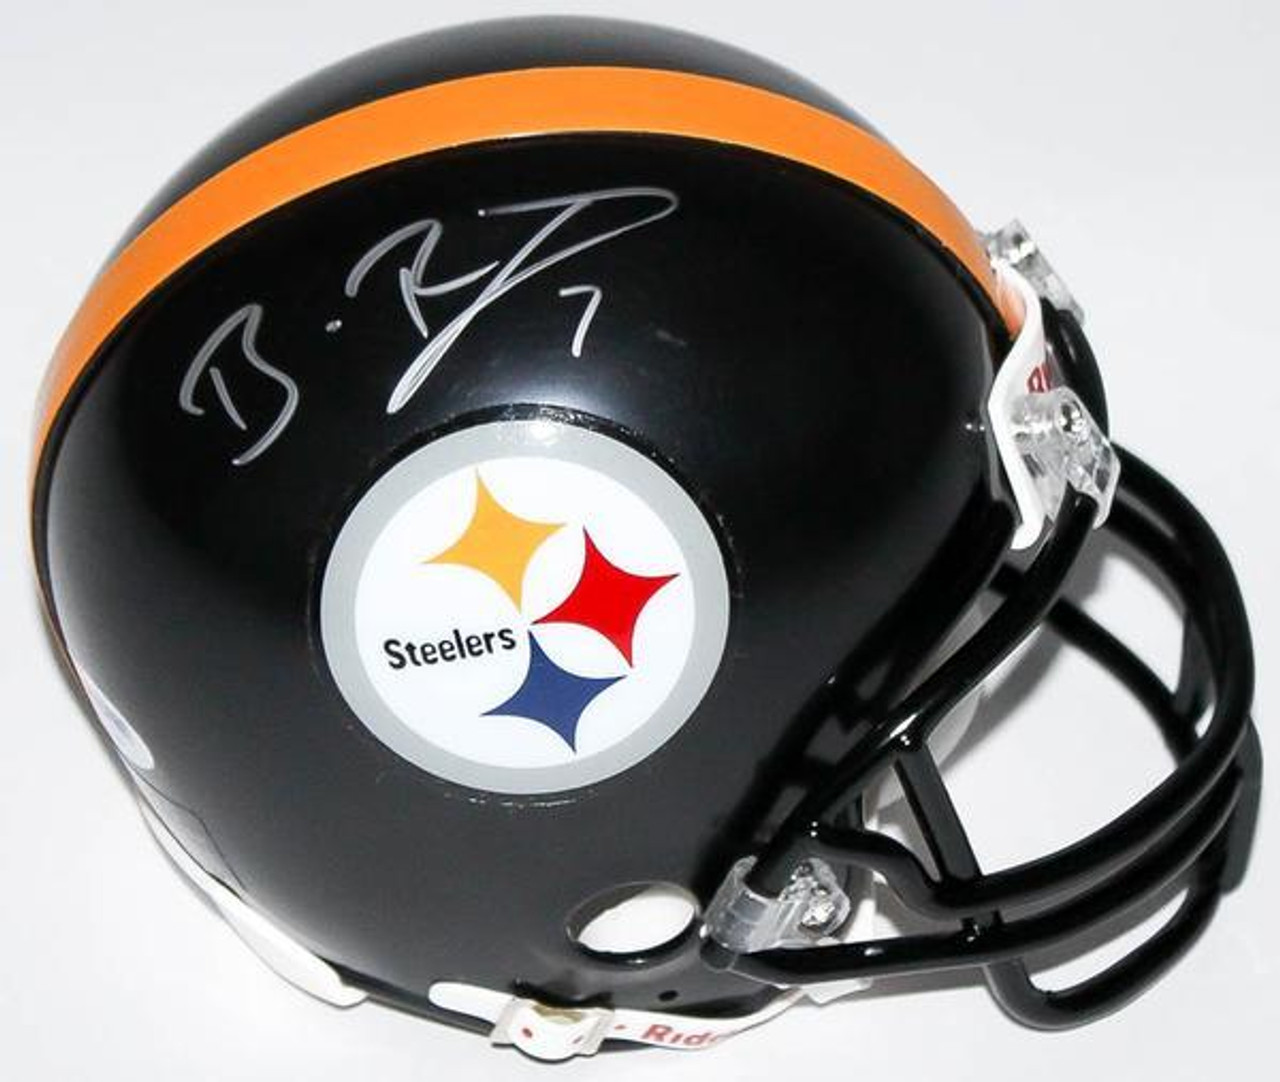 Ben Roethlisberger Pittsburgh Steelers Autographed Mini Football Helmet -  Maverick Autographs and Collectibles c30d06ad2